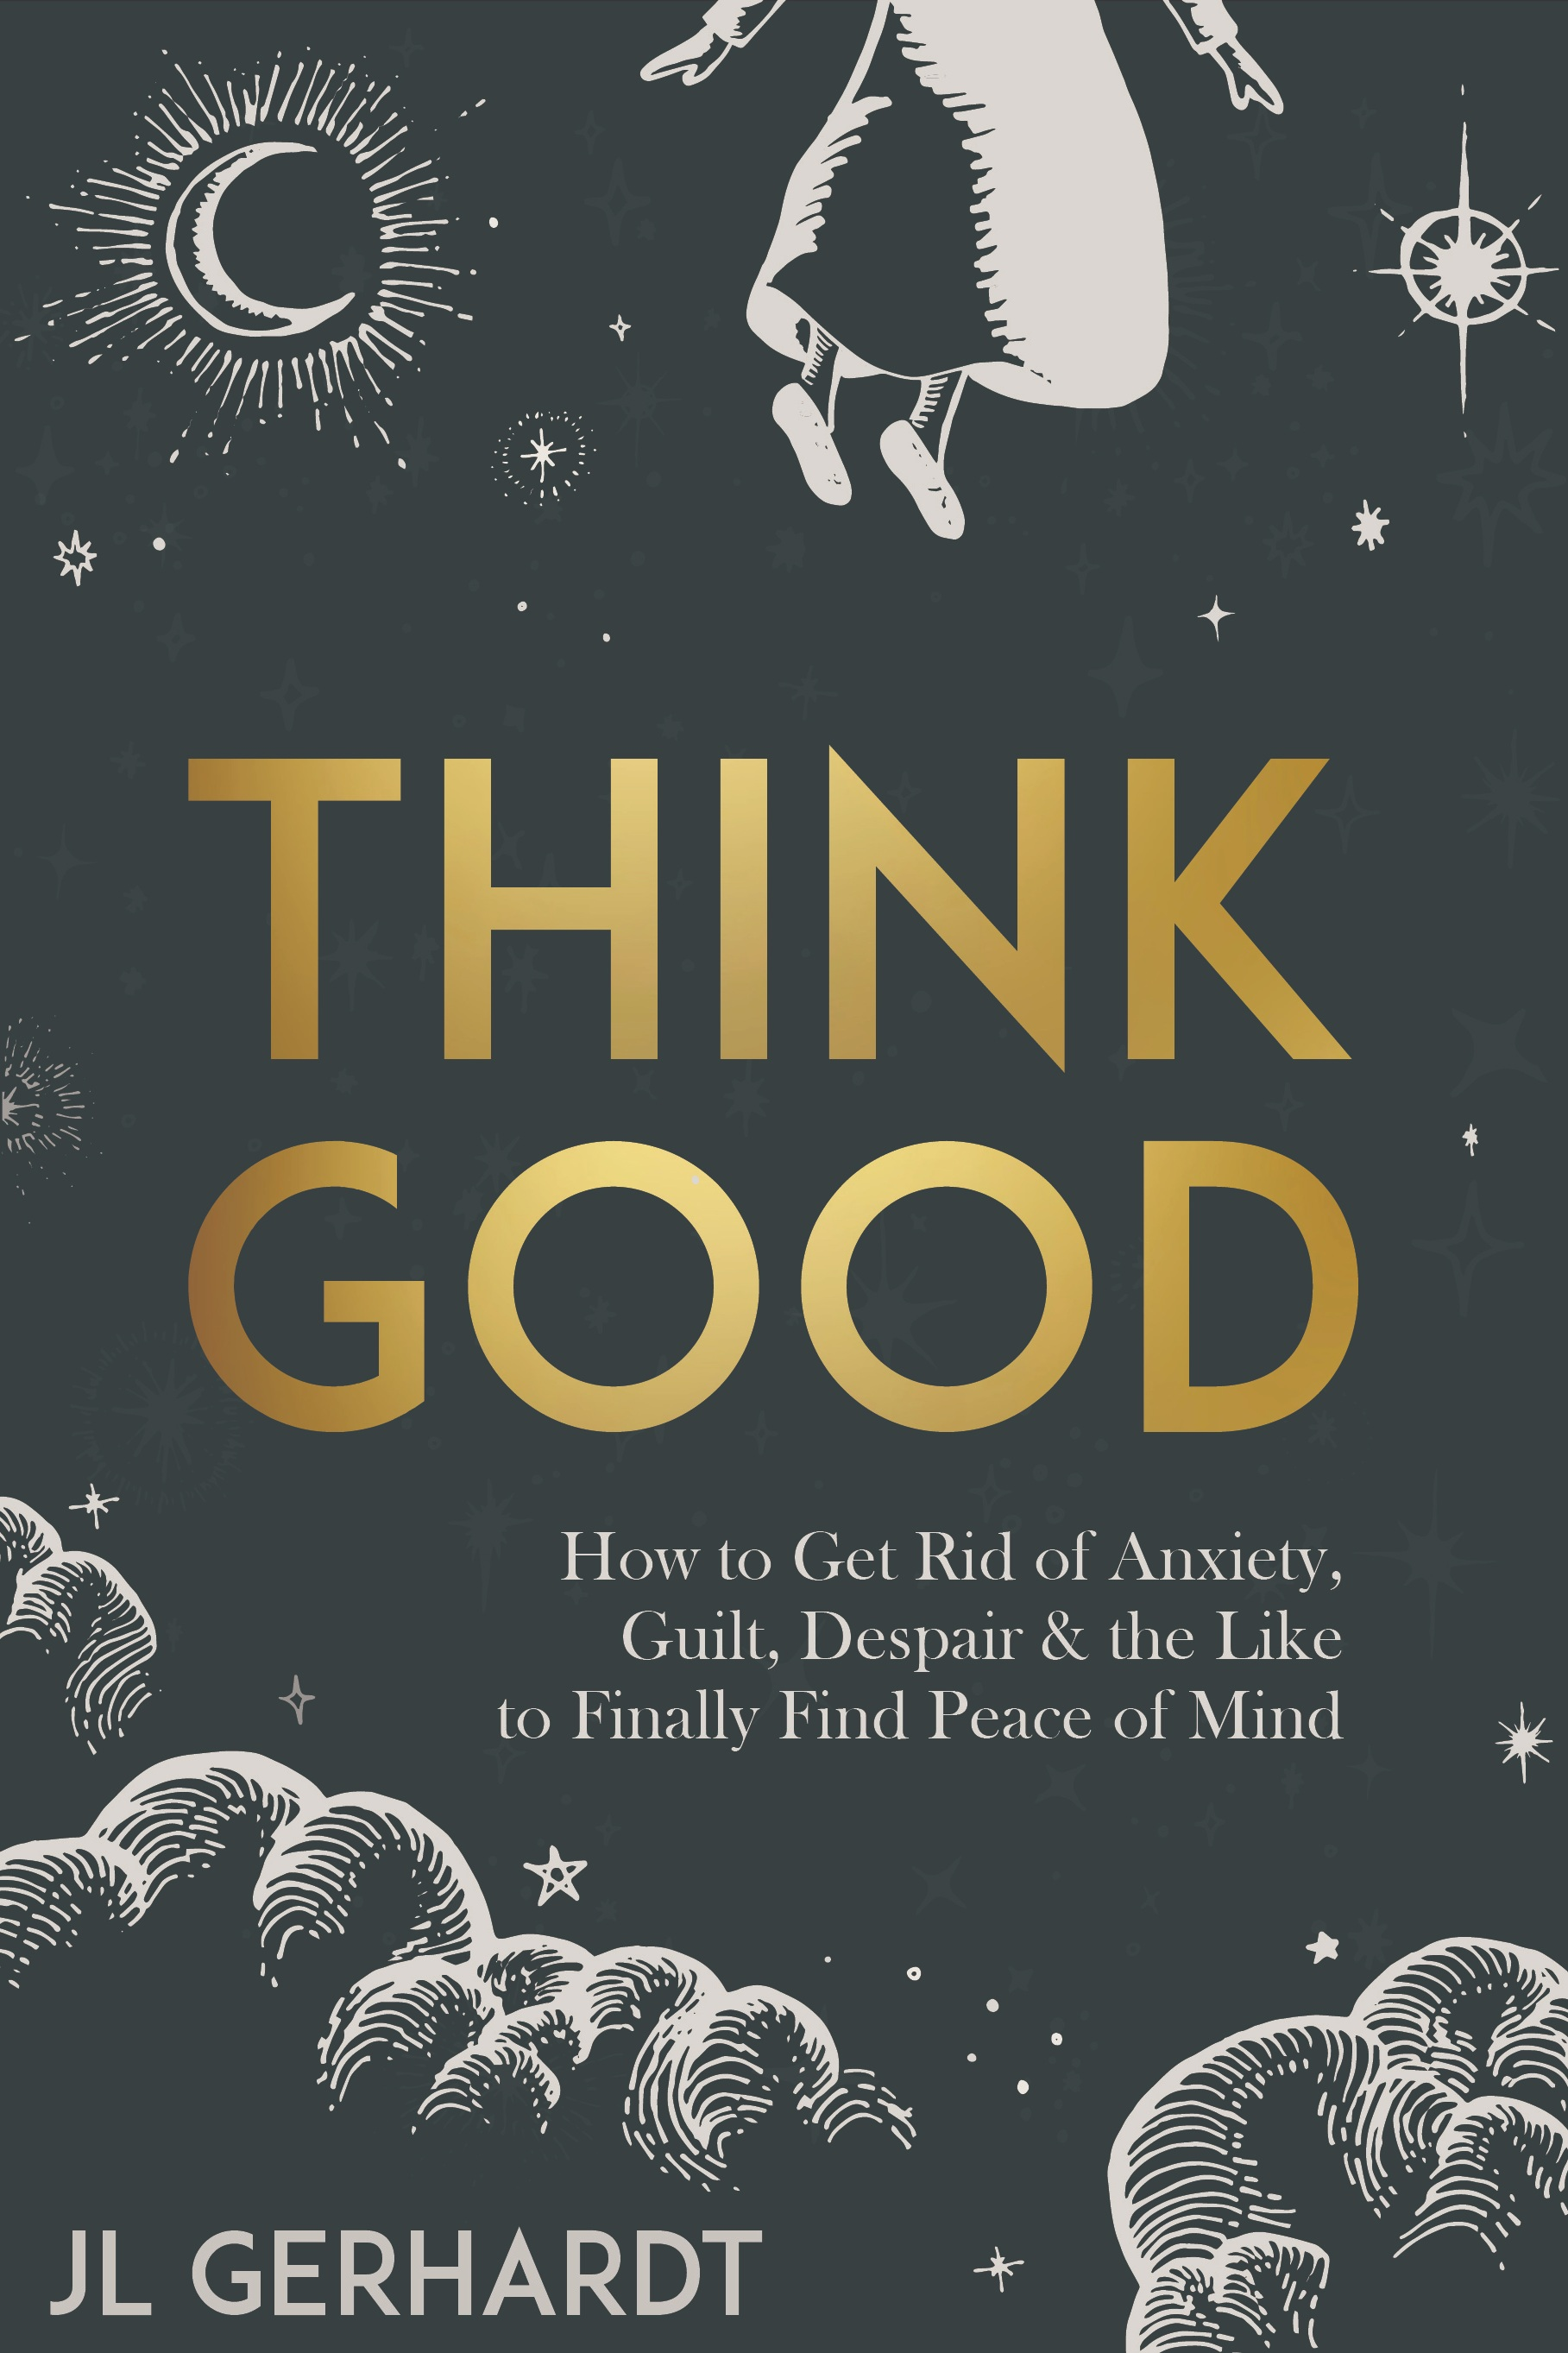 Think Good book cover final copy.jpg